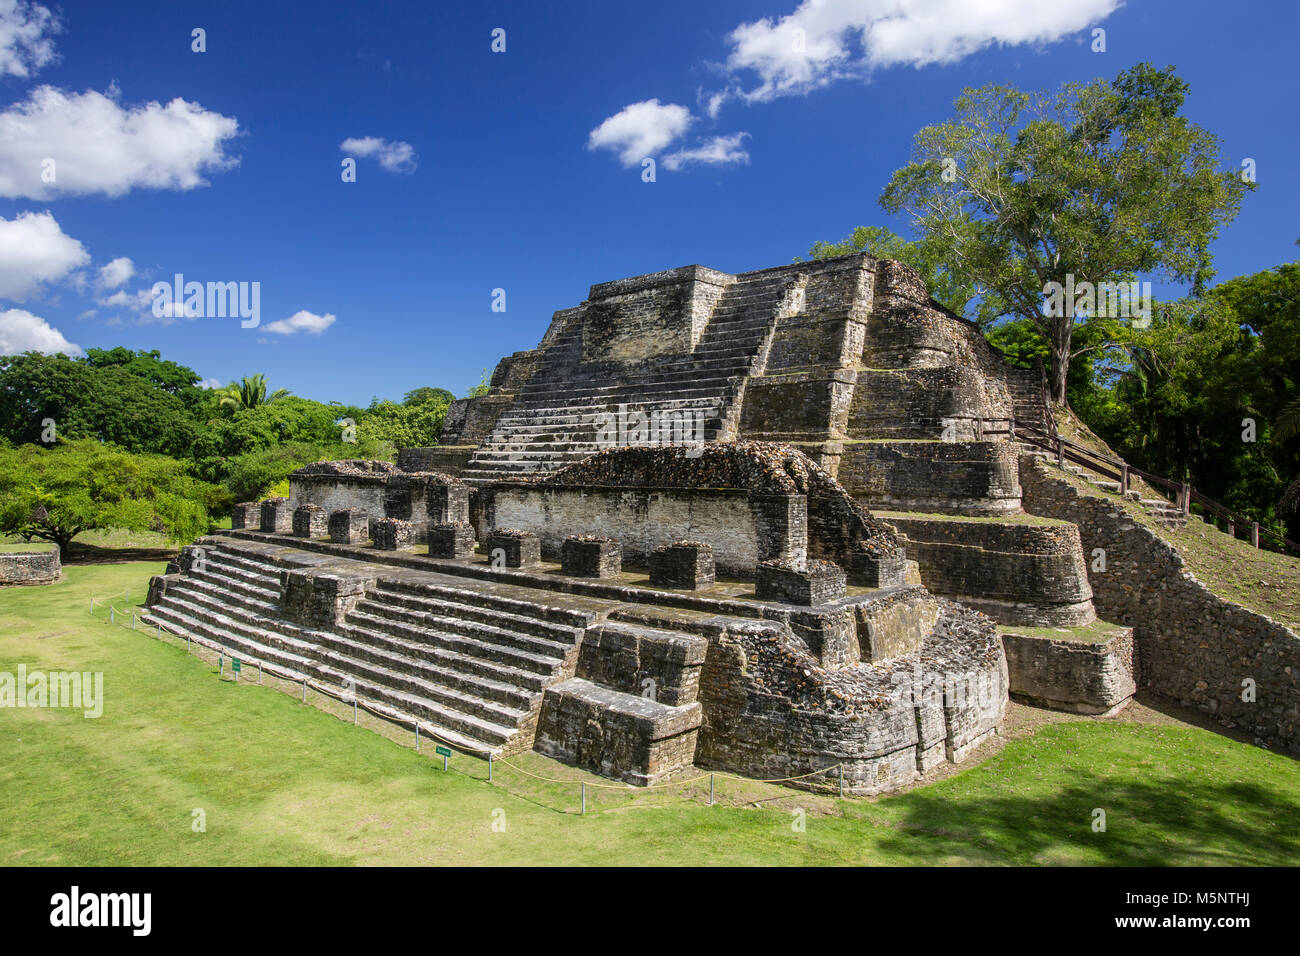 The Belize Altun Ha Mayan Ruins - Stock Image